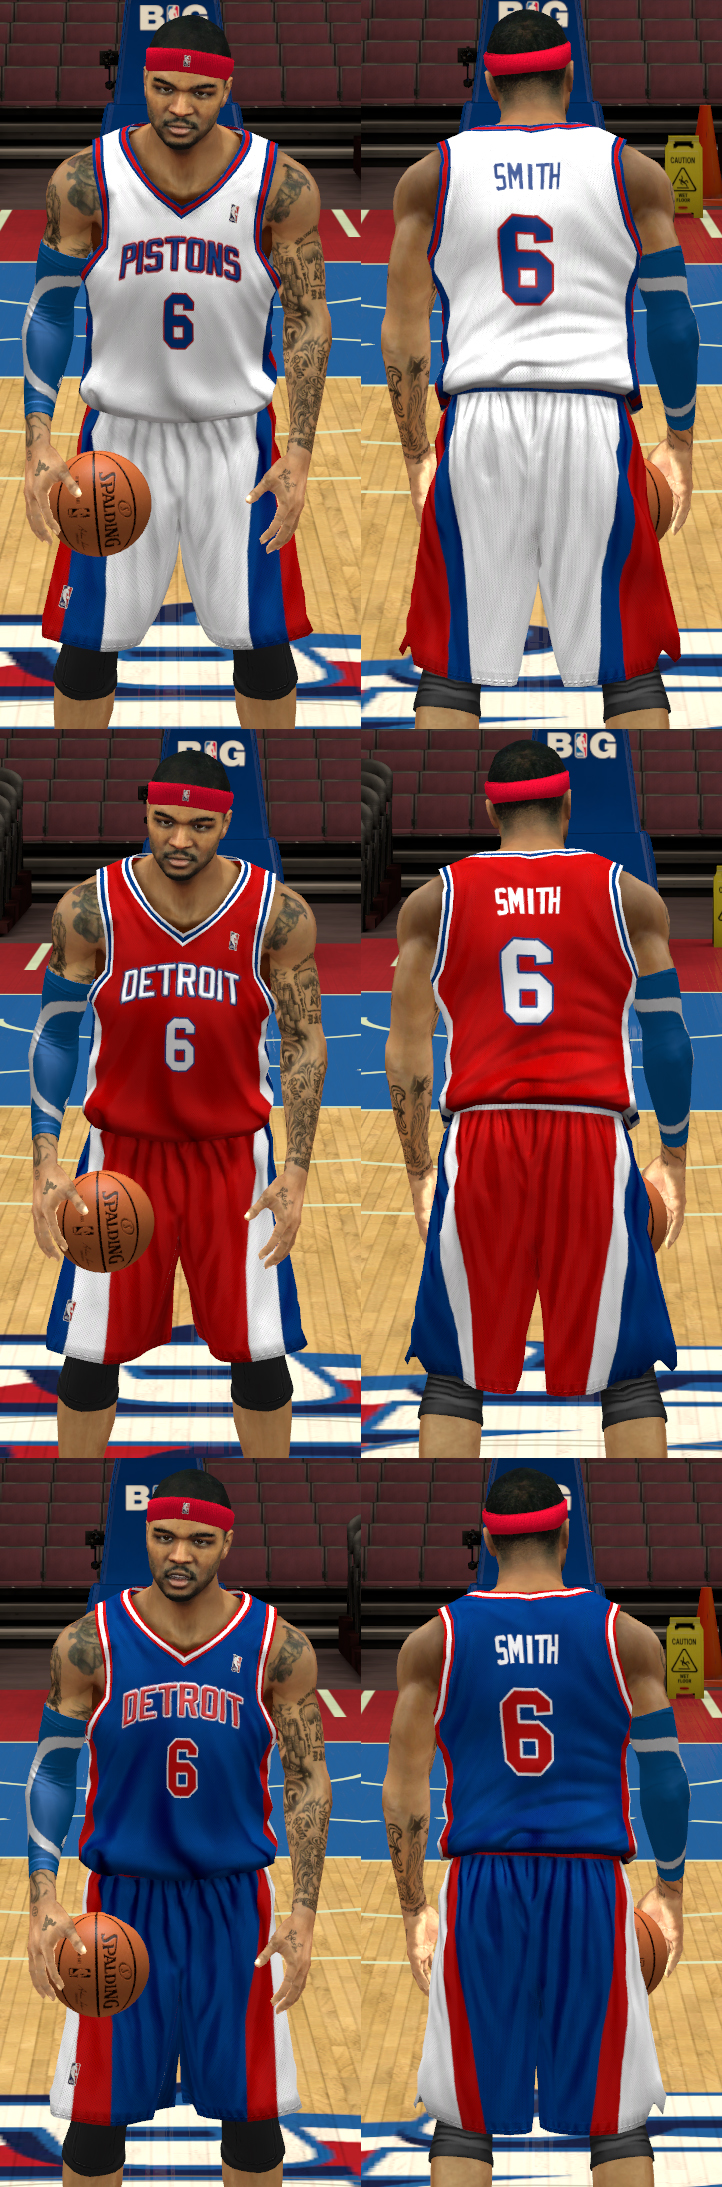 1977/78 Detroit Pistons Uniforms